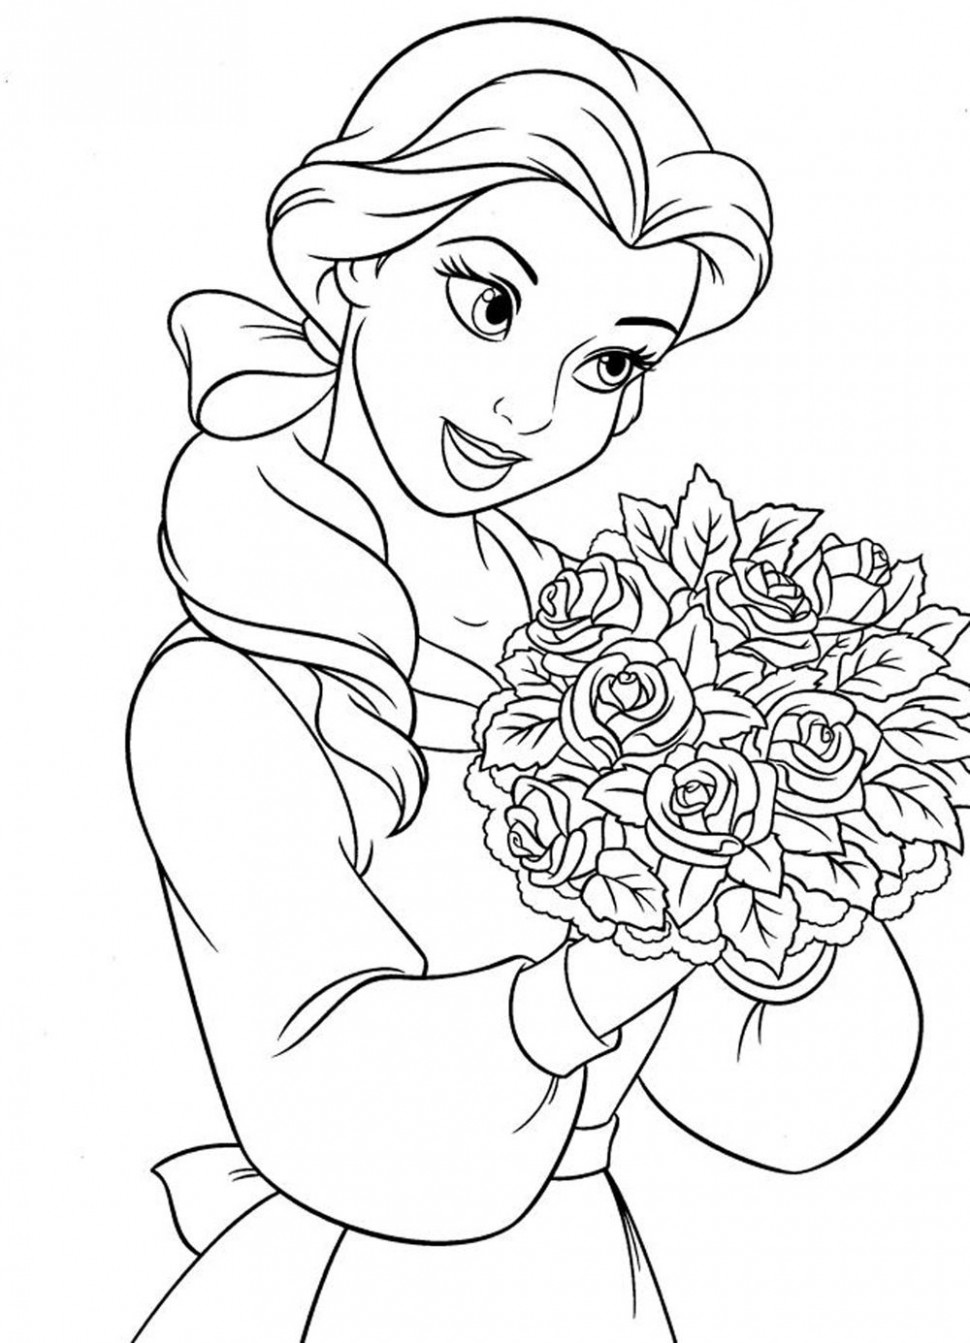 Disney Princess Coloring Book | DISNEY COLORING PAGES | Disney ..